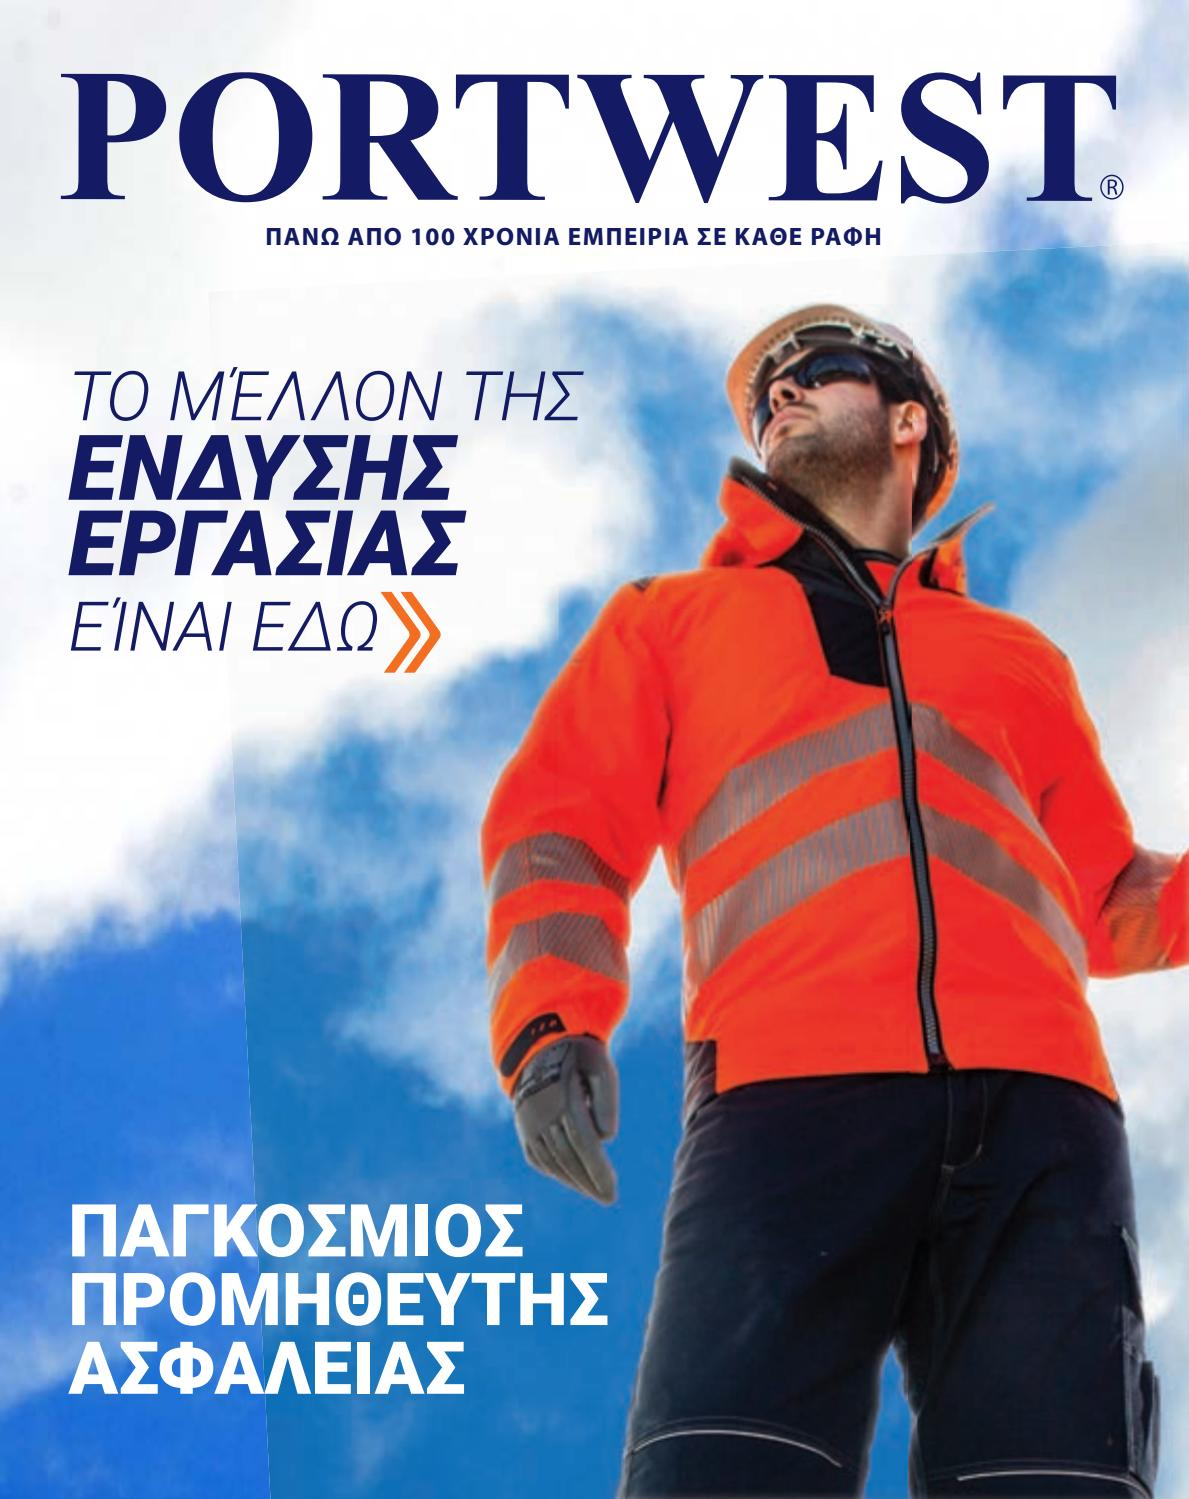 84747de7c59 Greek online by Portwest Ltd - issuu